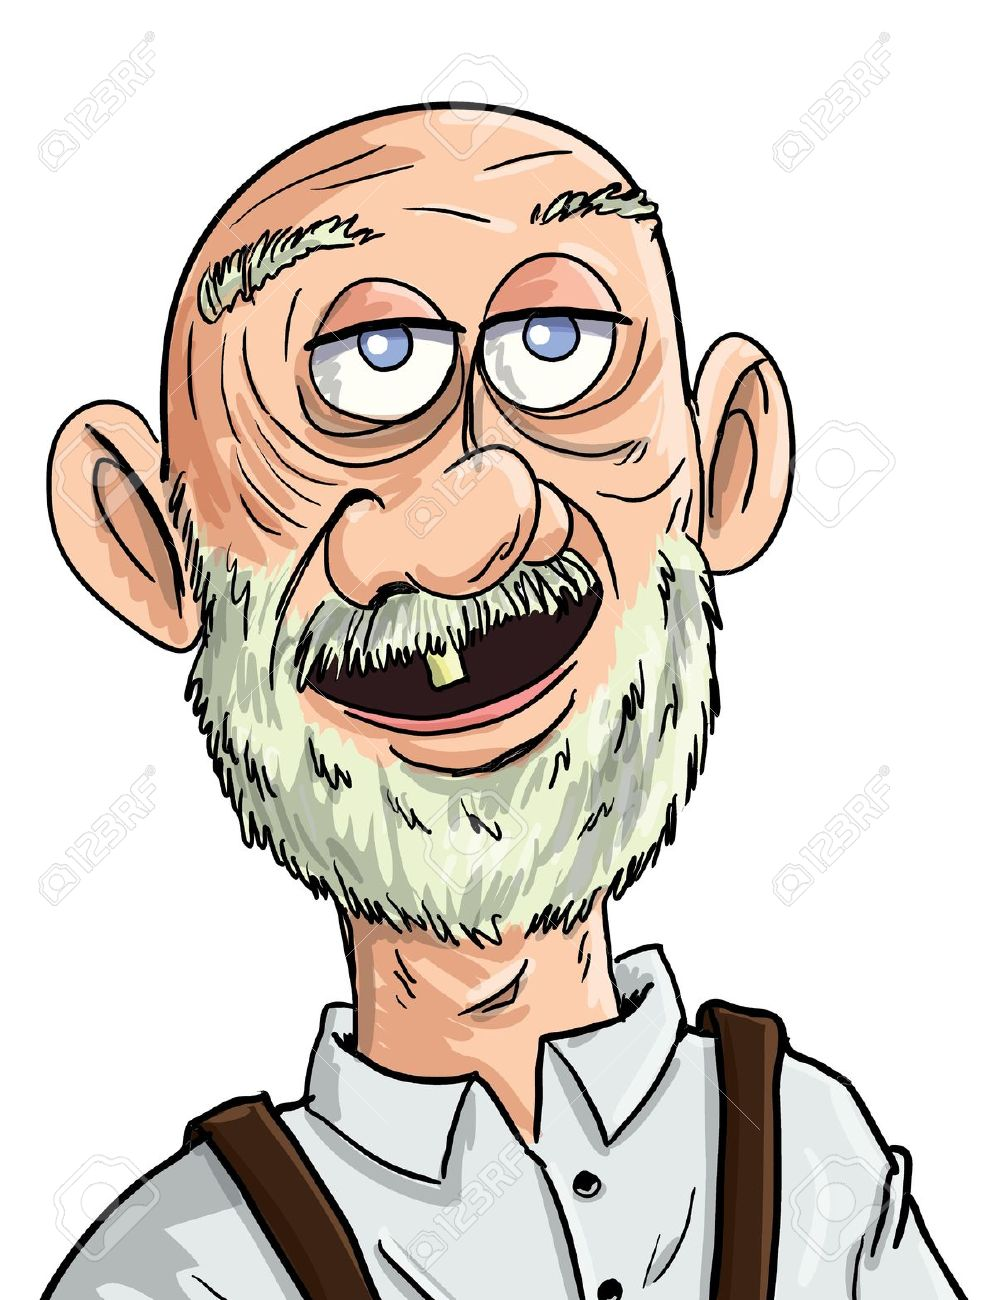 Old man laughing clipart funny png library Old man laughing picture transparent png files, Free CLip ... png library